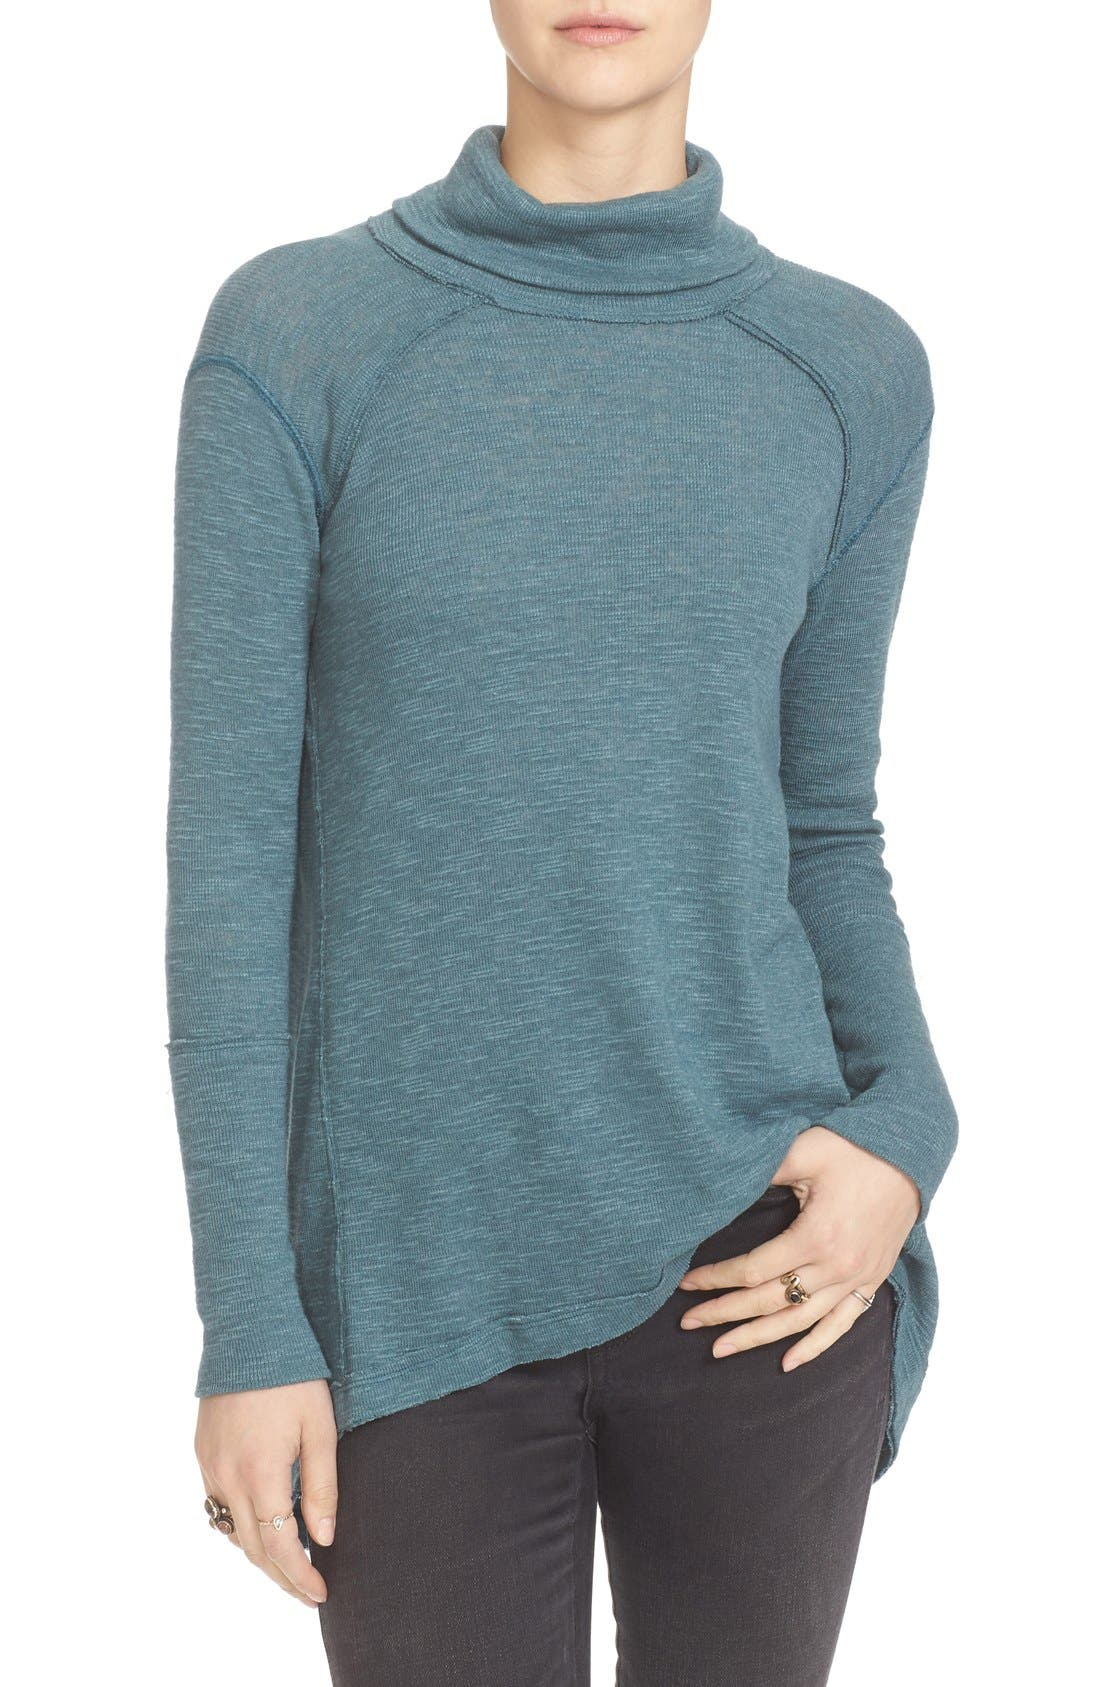 Details about  /Free People We the Free Split Back High Low Turtleneck Long Sleeve Top Size XS